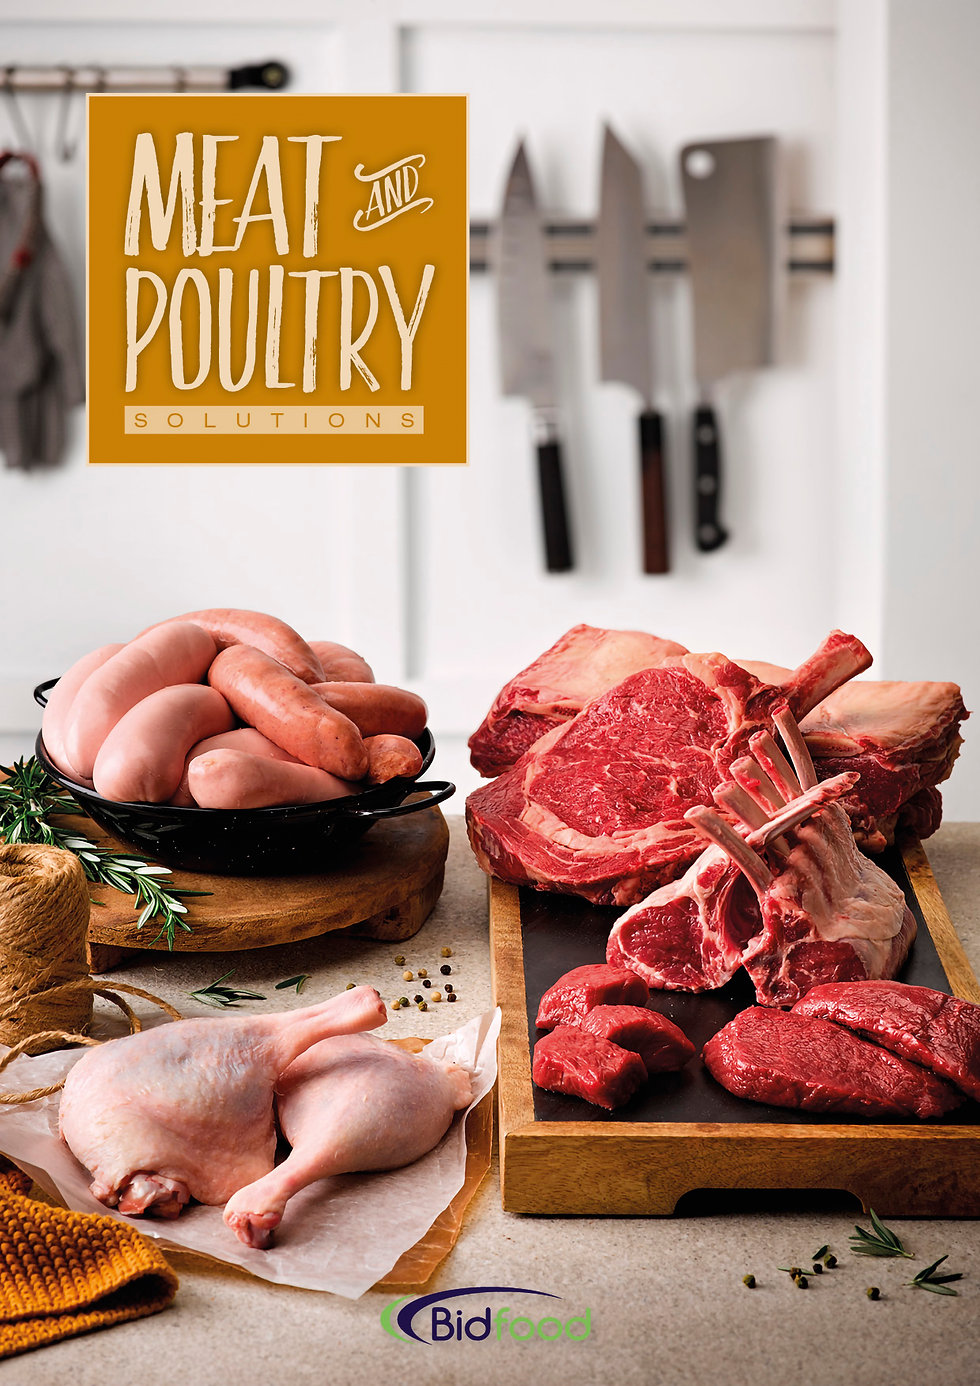 Meat & Poultry Solutions